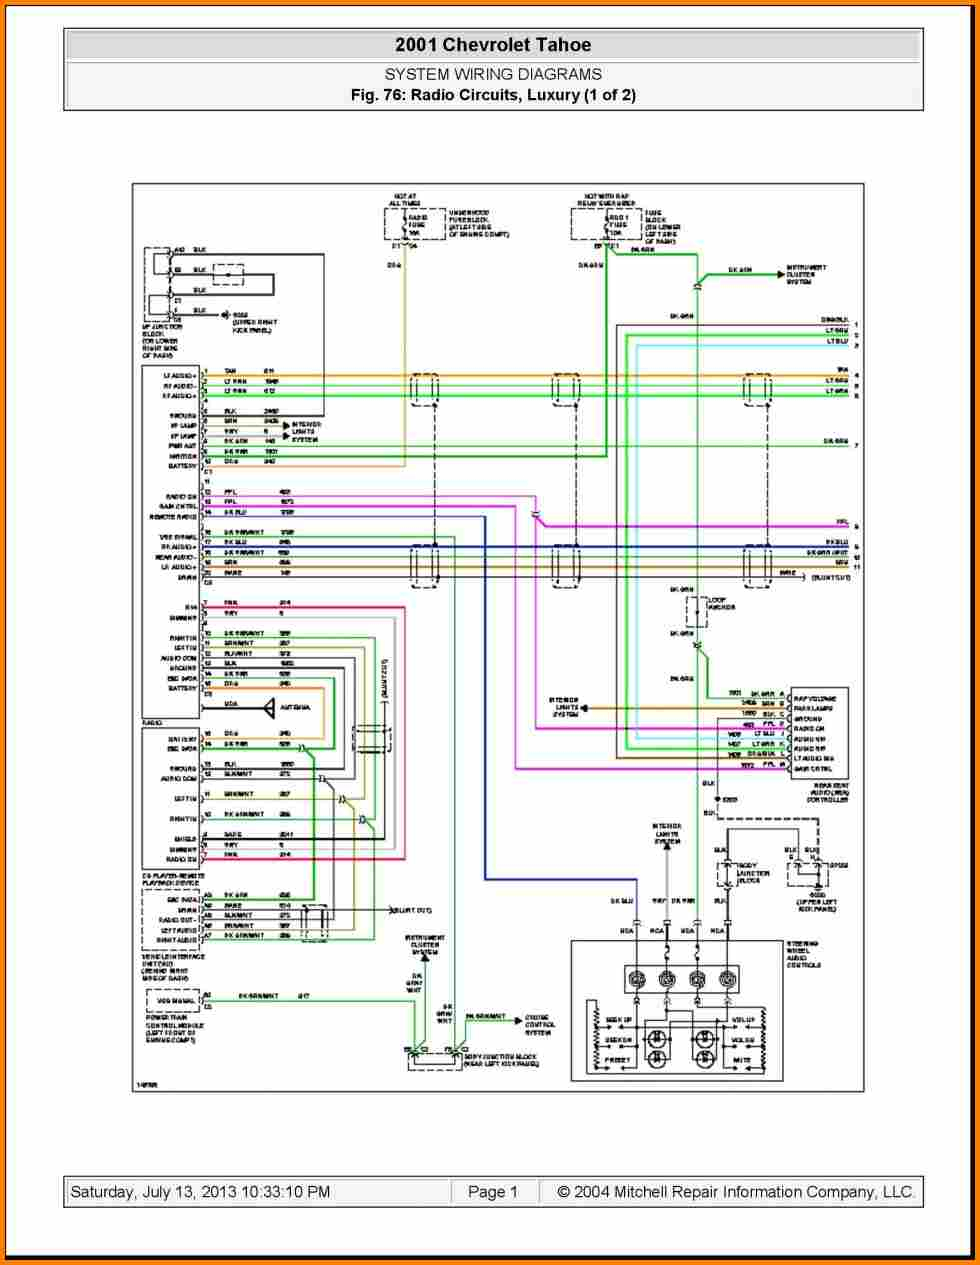 2004 Silverado Bose Radio Wiring Diagram Collection